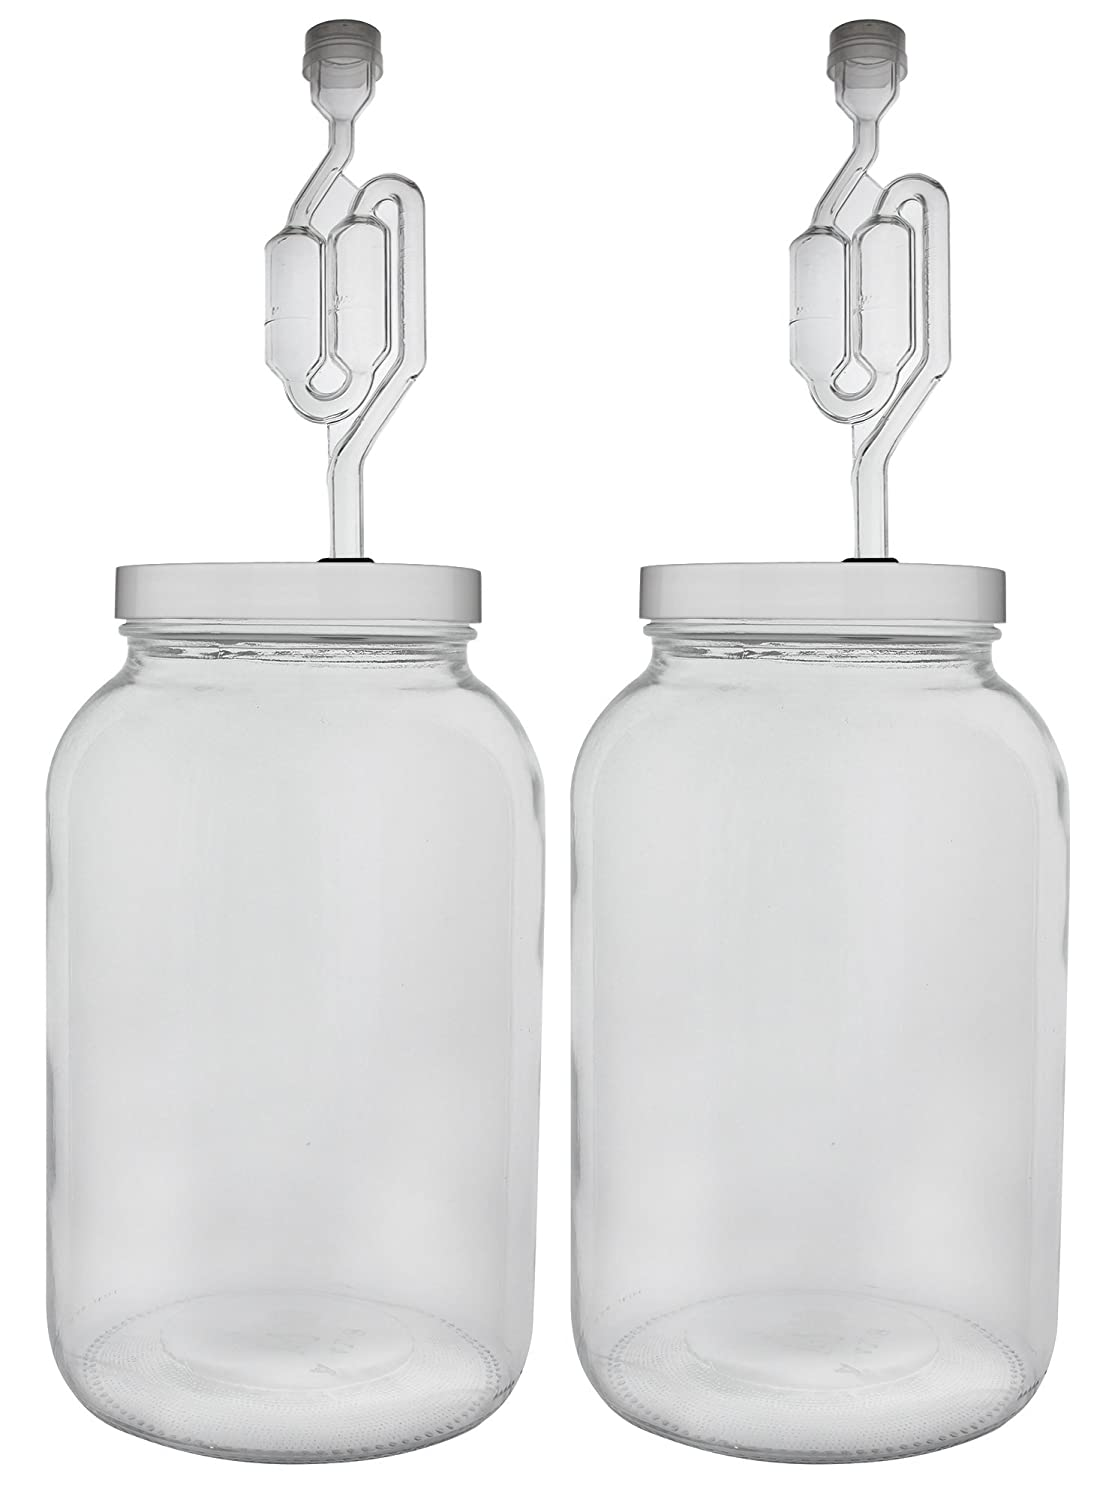 Home Brew Ohio One gallon Wide Mouth Jar with Drilled Lid & Twin Bubble Airlock-Set of 2